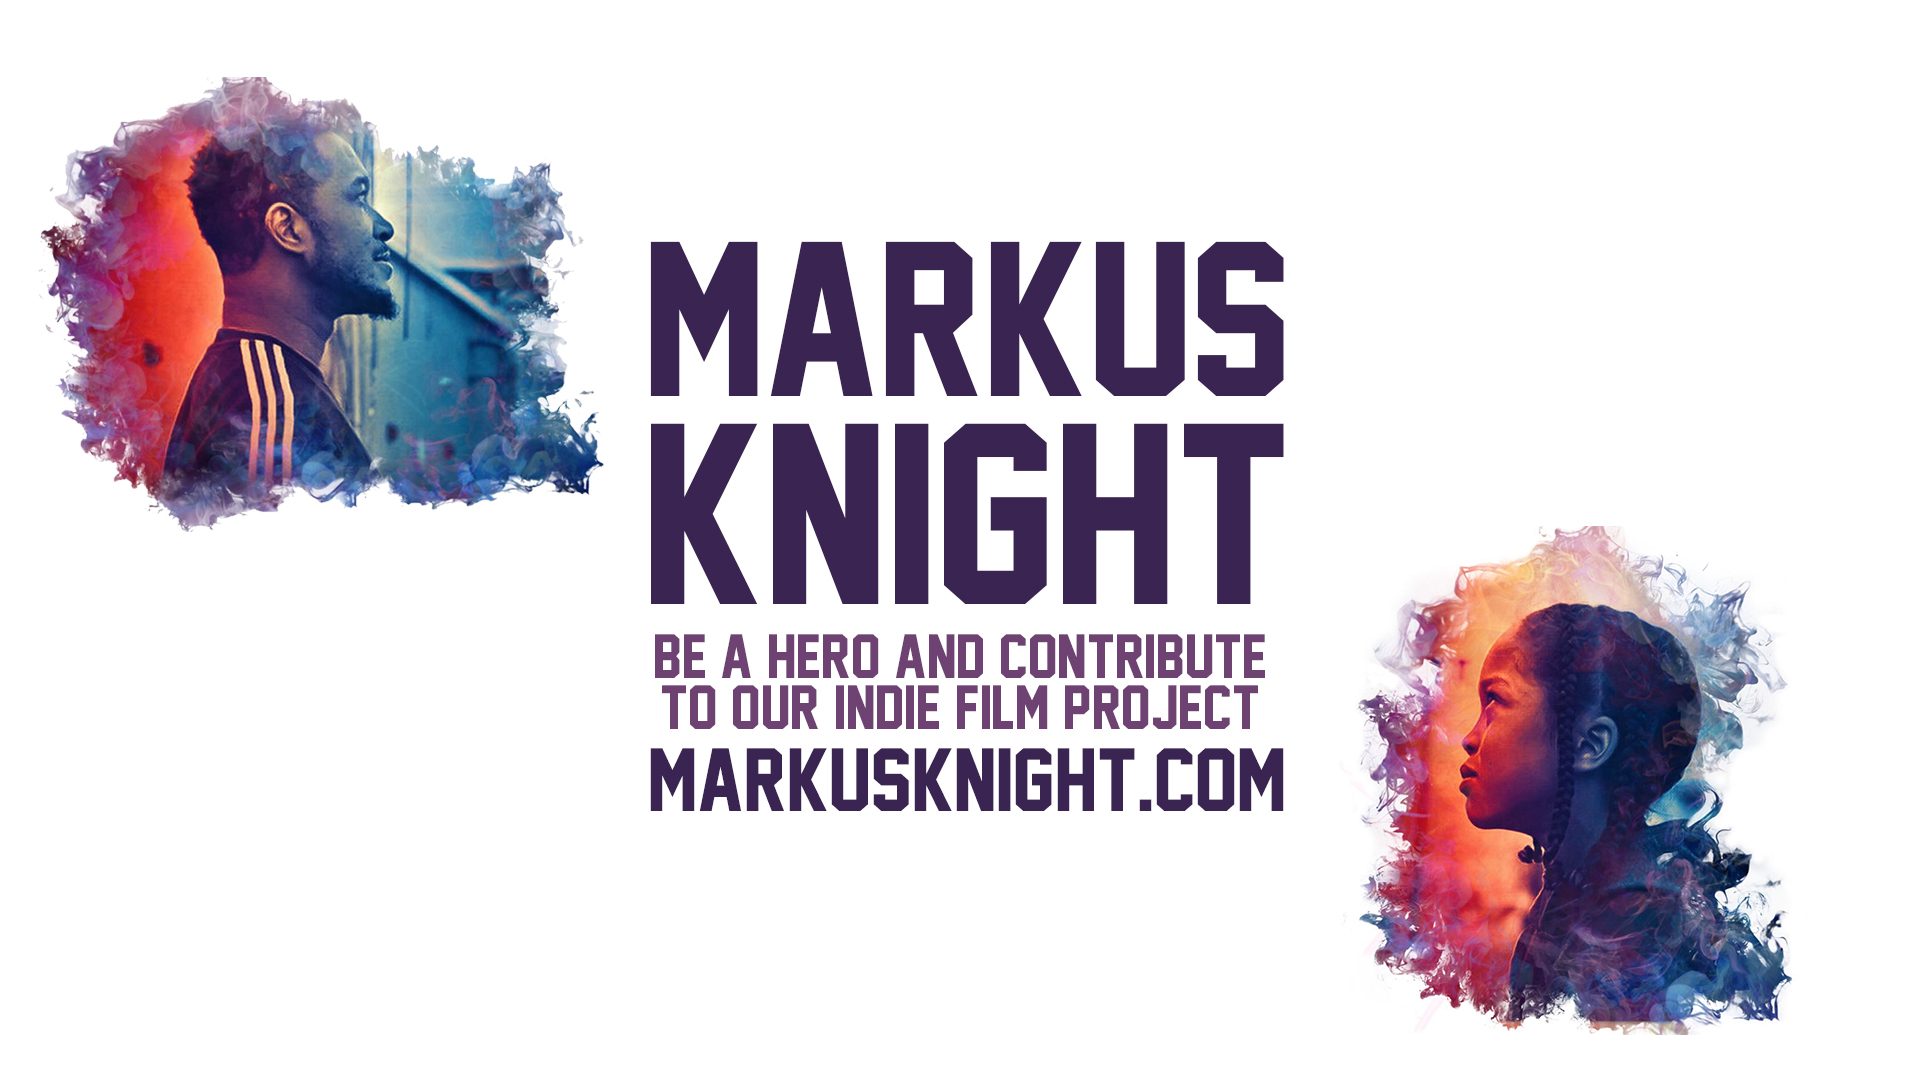 MARKUS KNIGHT: A FILM BY KASH COLE